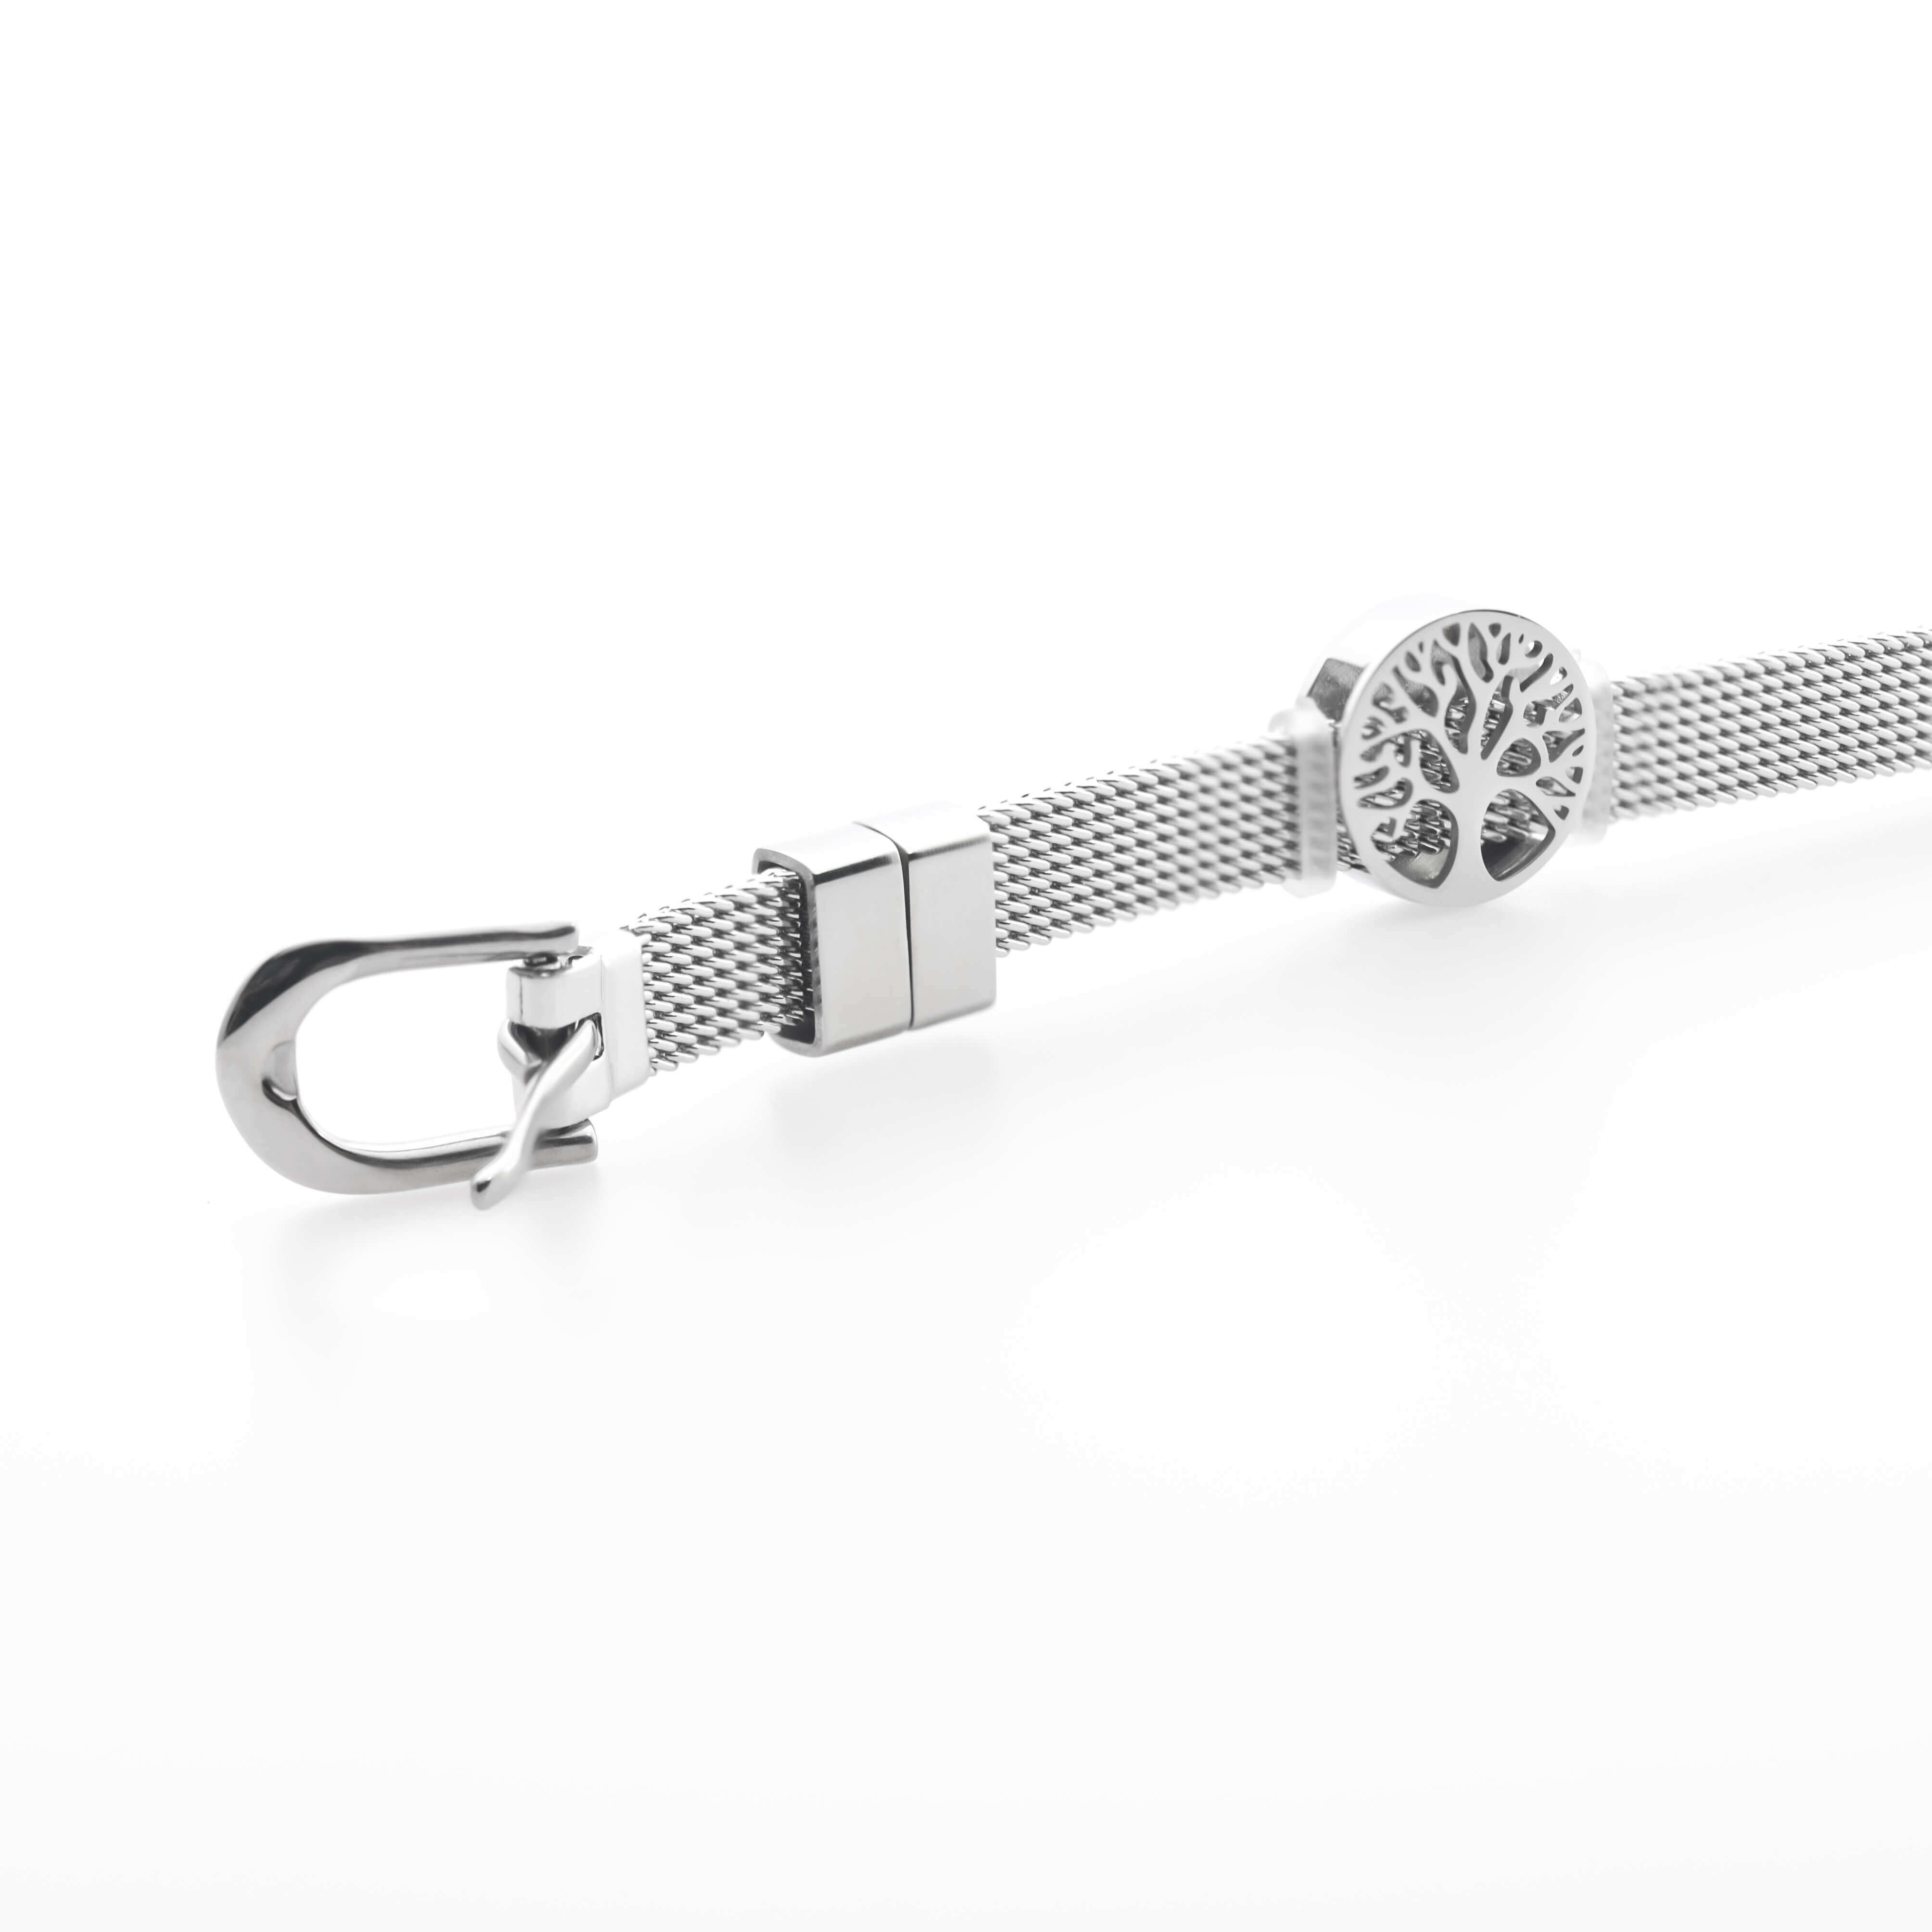 This is wristwatch stainless steel bangle.